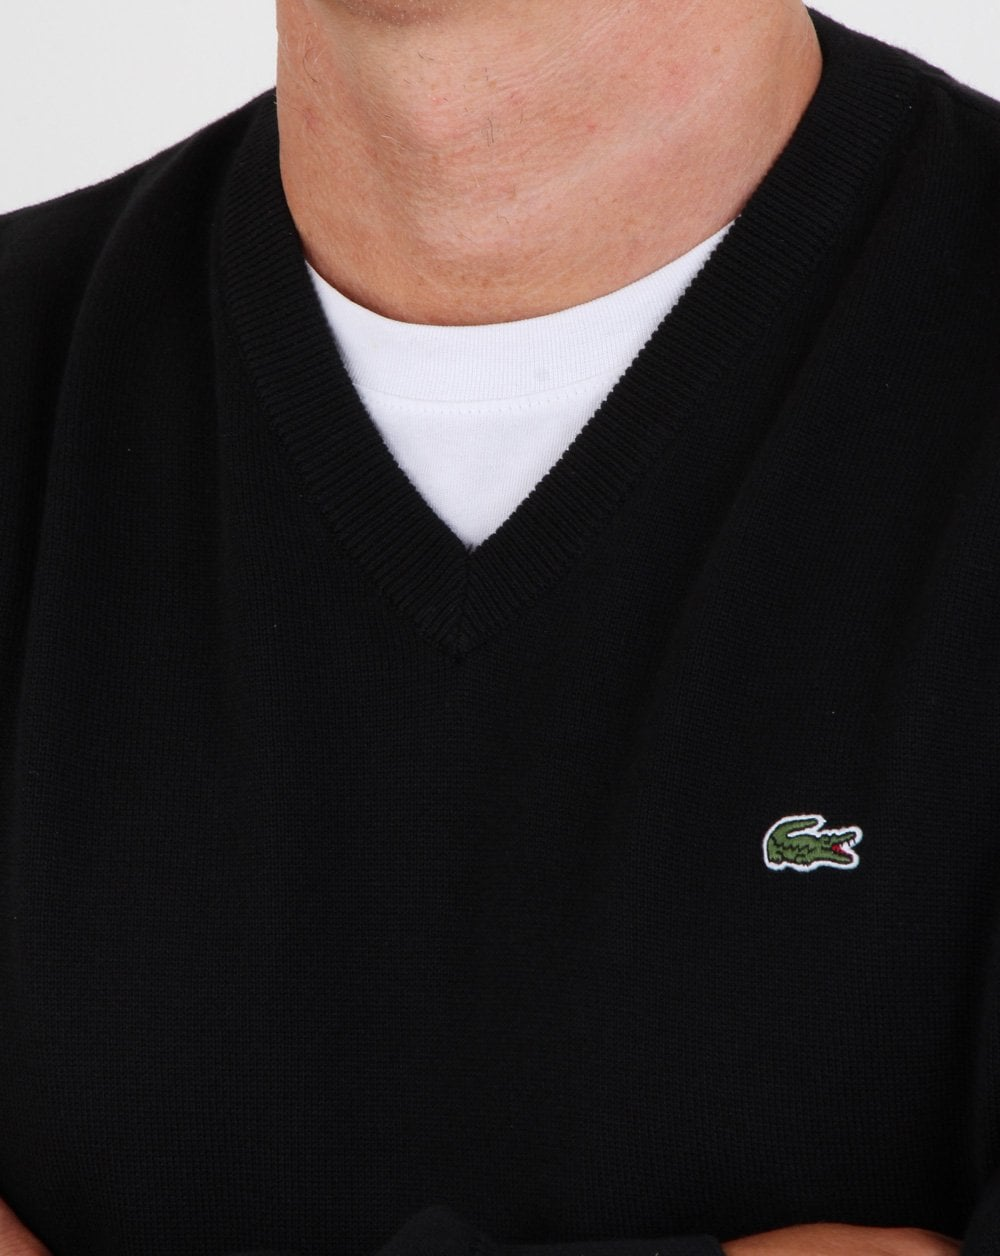 800b318093 Lacoste V-neck knit Black, sweater, jumper,Lacoste sweatshirt, casual